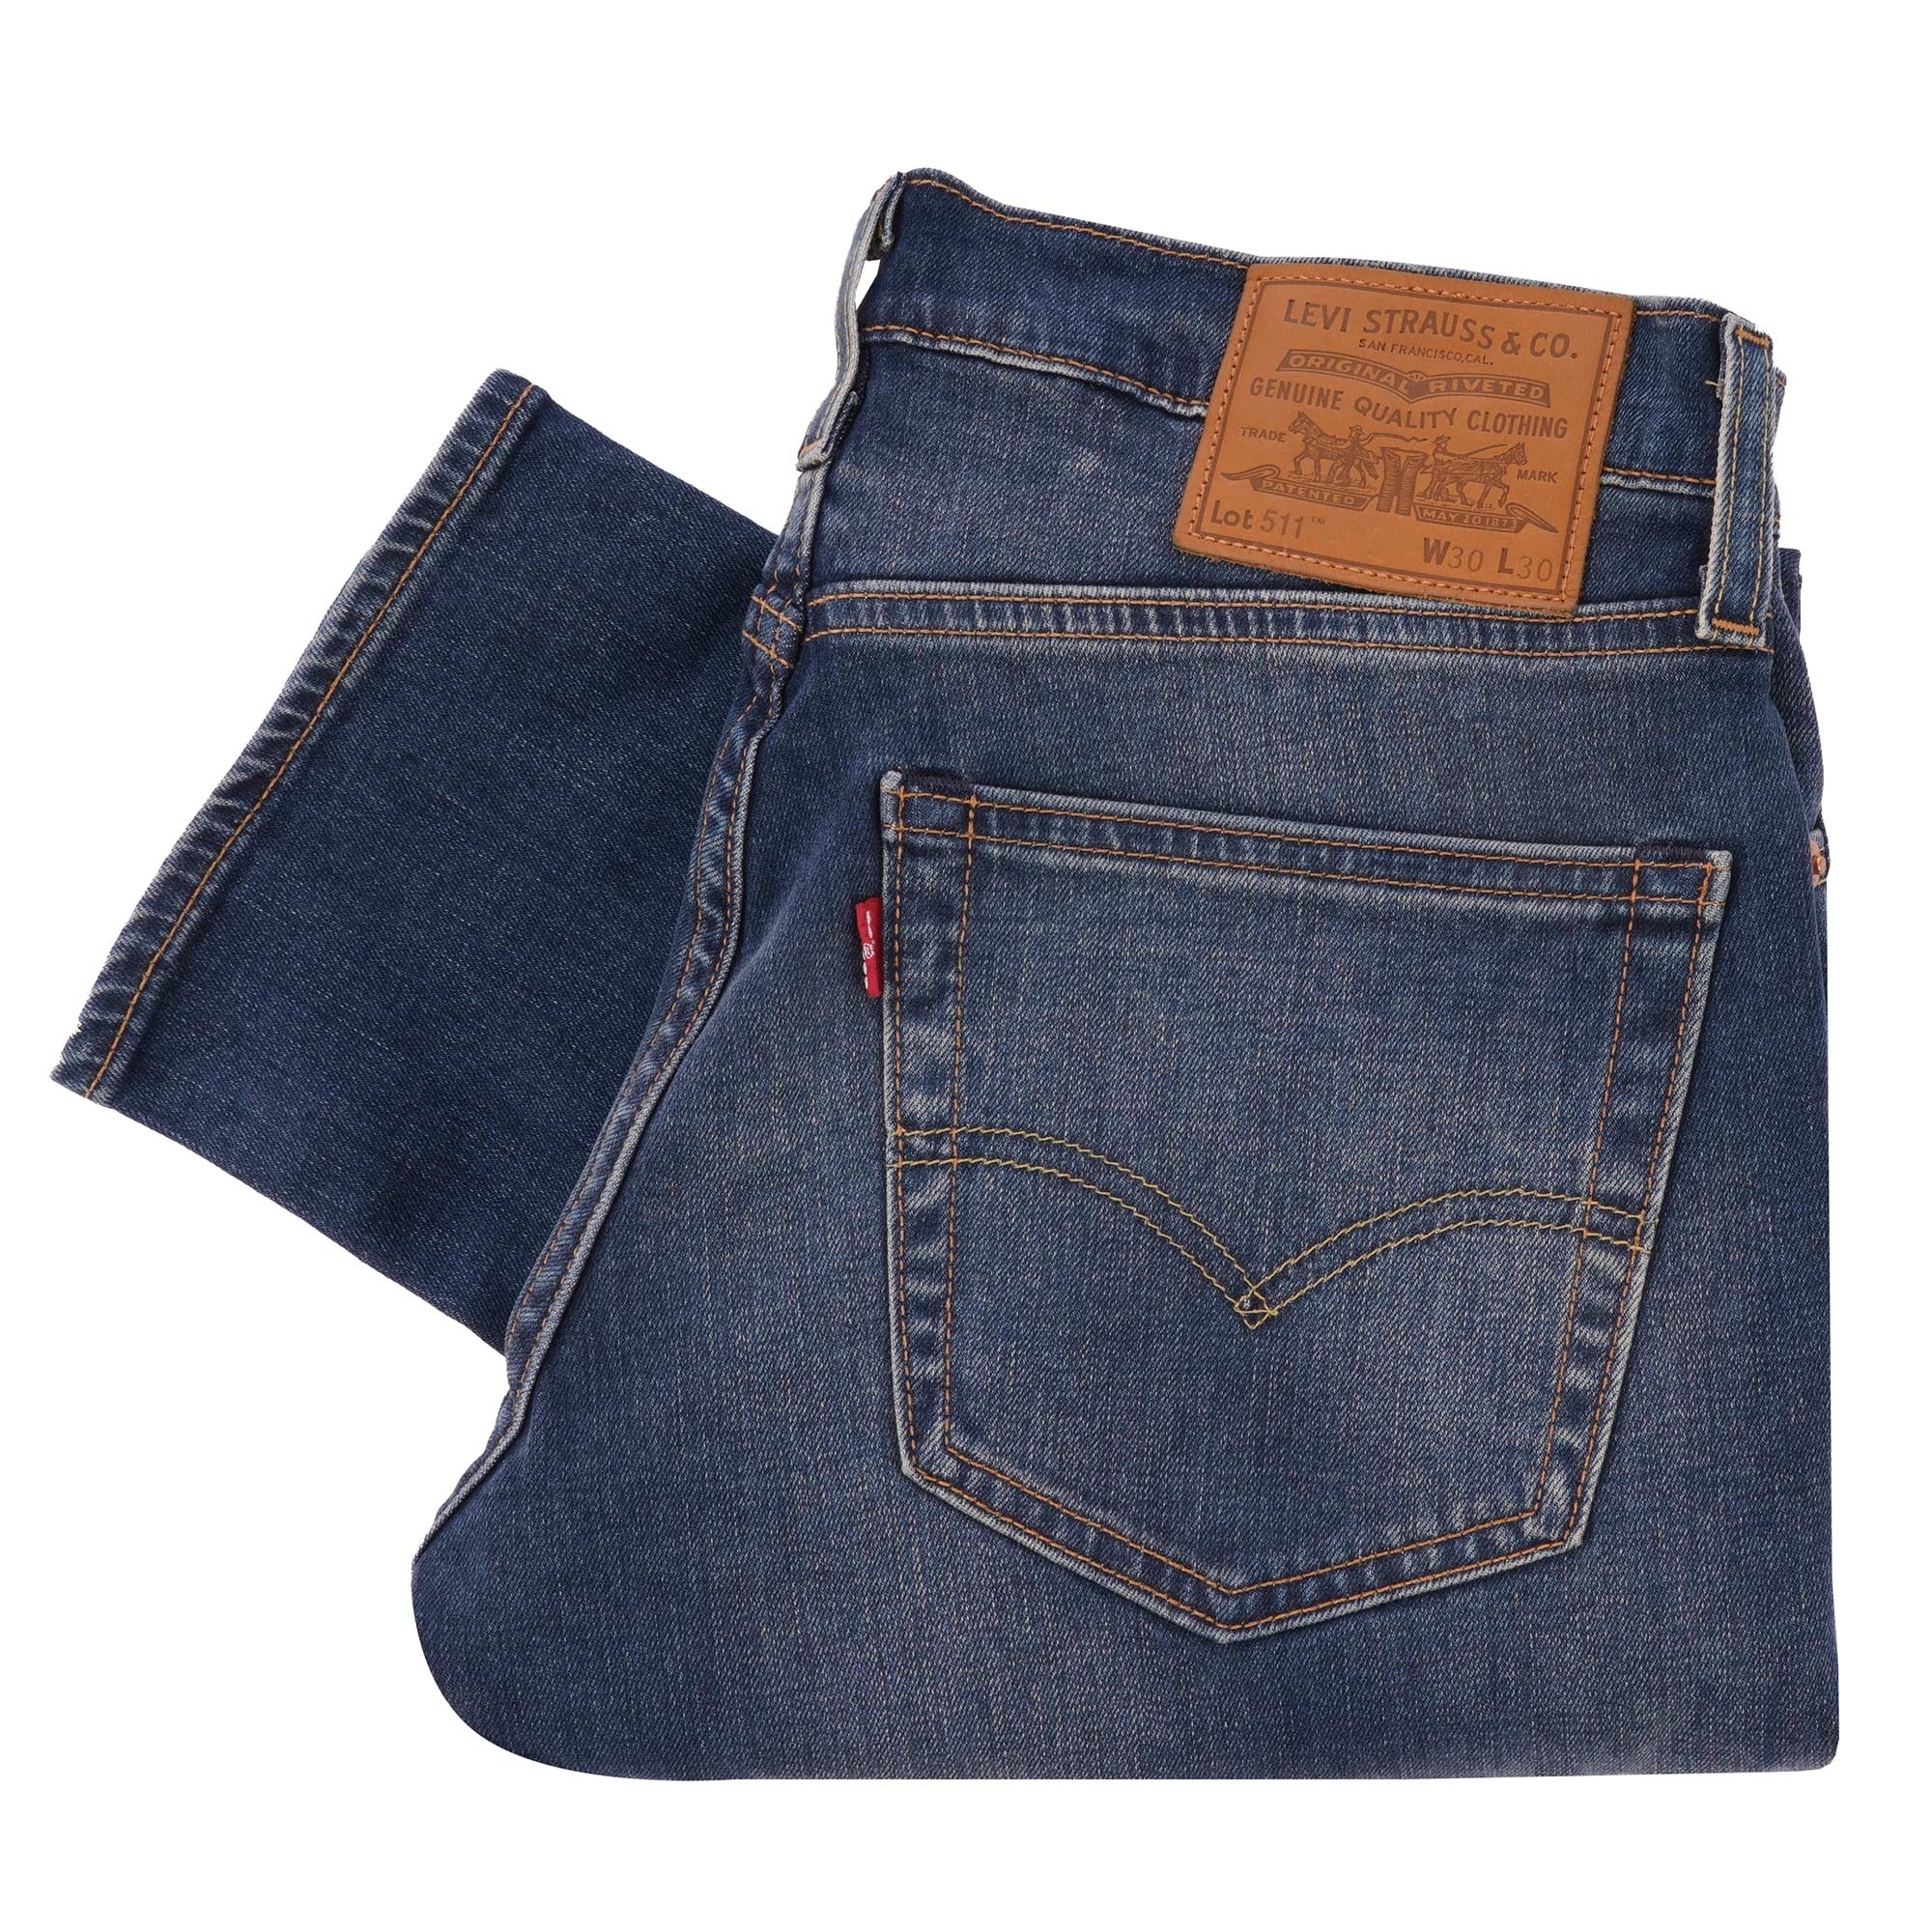 9b7905420ff Levi's 511 Slim Fit Thermadapt Jeans | Casbian Adapt | US Stockists